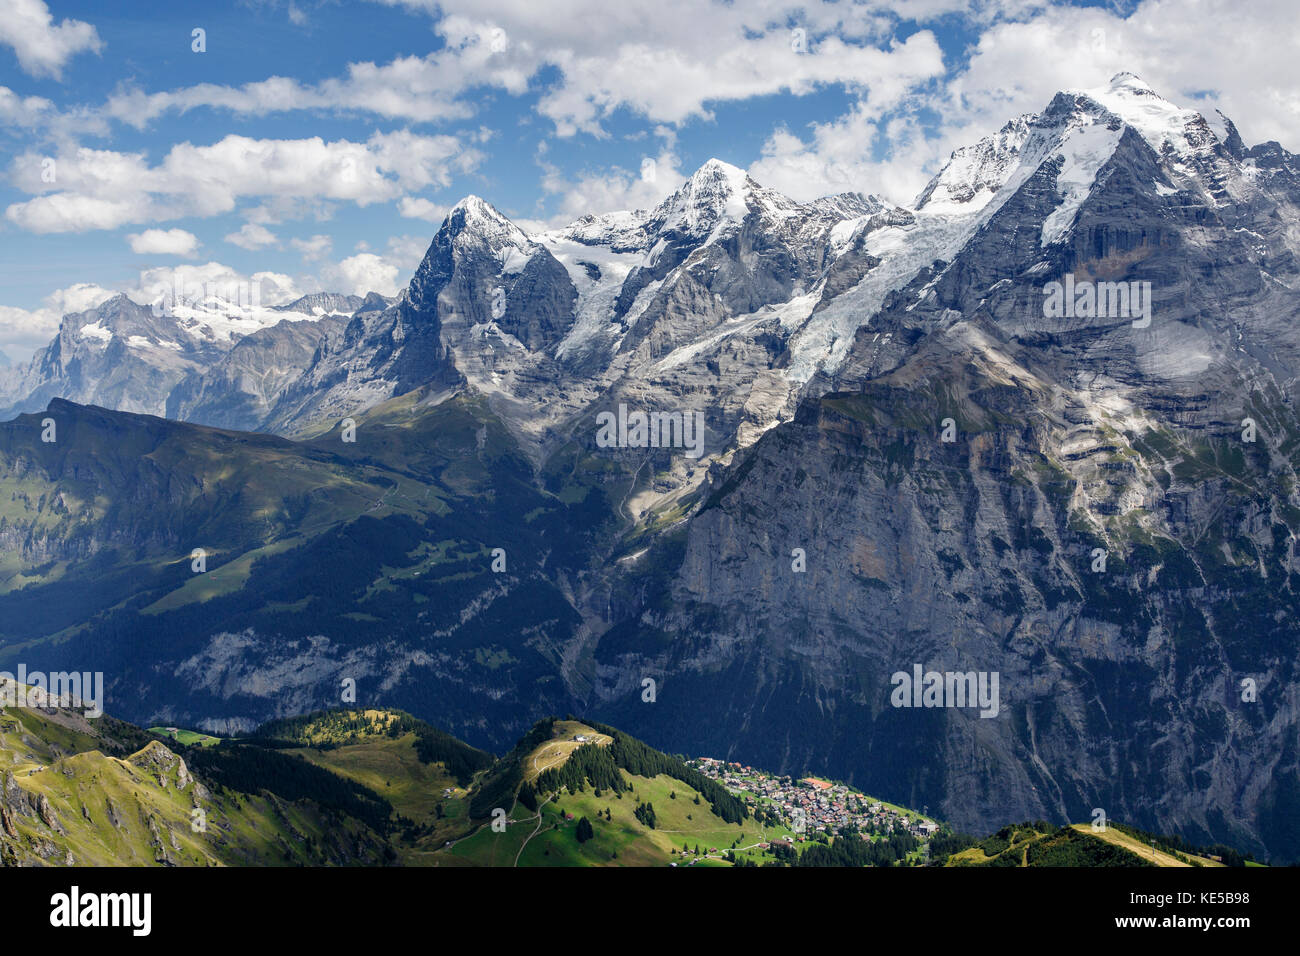 View across the Lauterbrunnen Valley to the Eiger, Mönch, Jungfrau and the village of Mürren from the Schilthorn Stock Photo